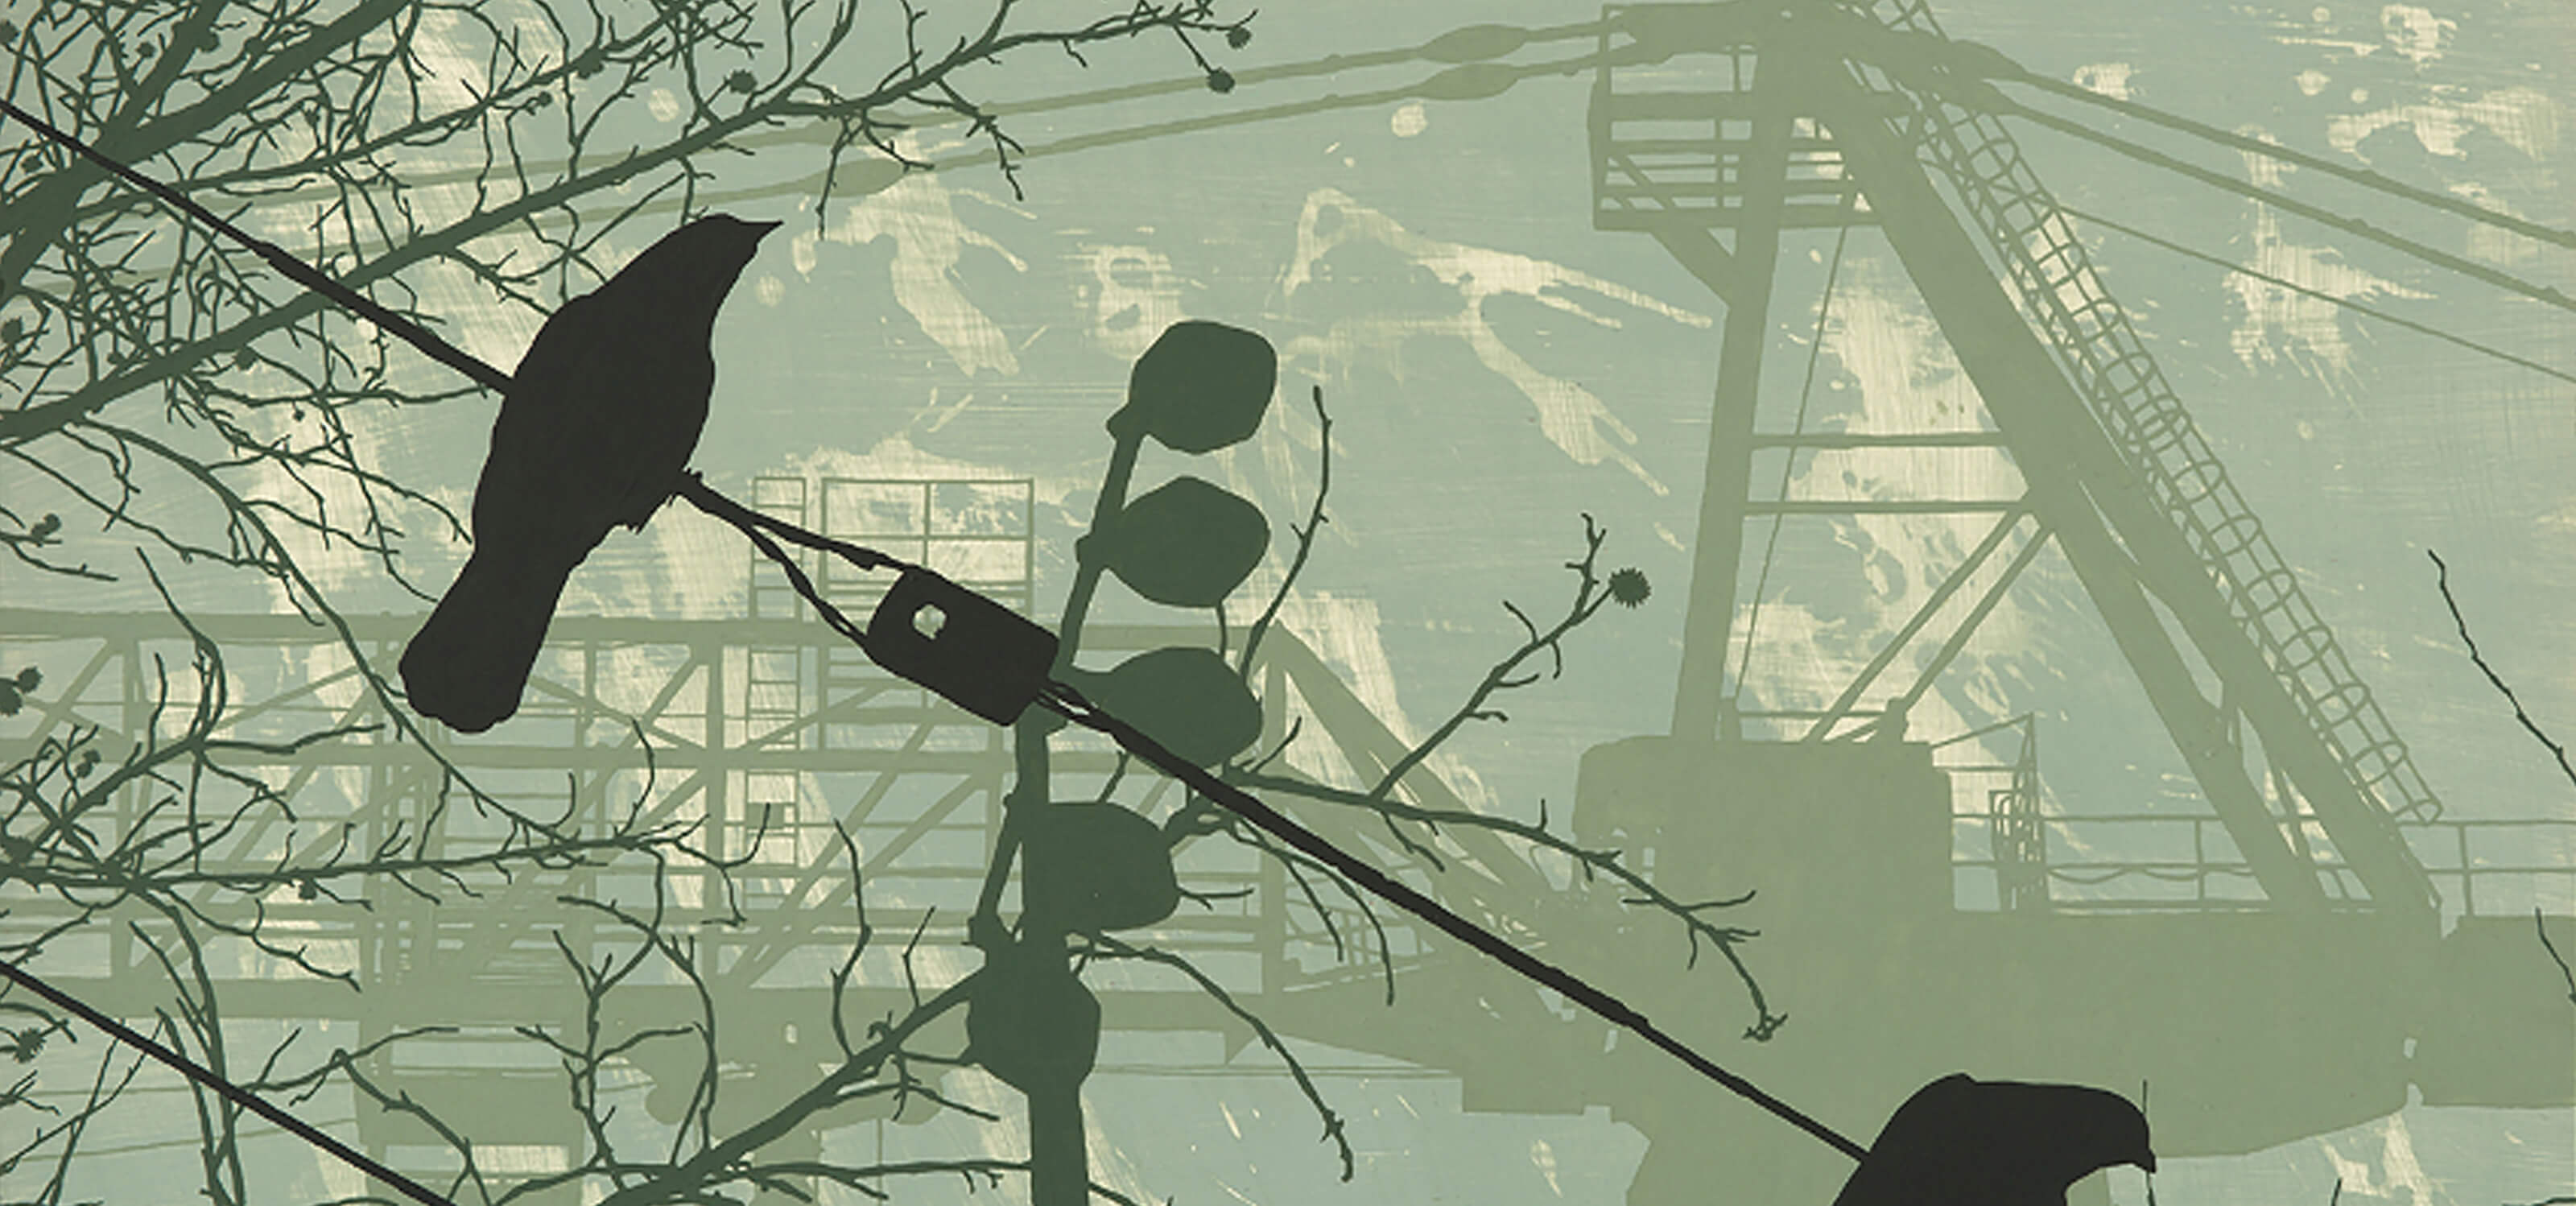 DigiPen MFA student Alex Bennett's painting of crows on a telephone wire with a construction crane in the background